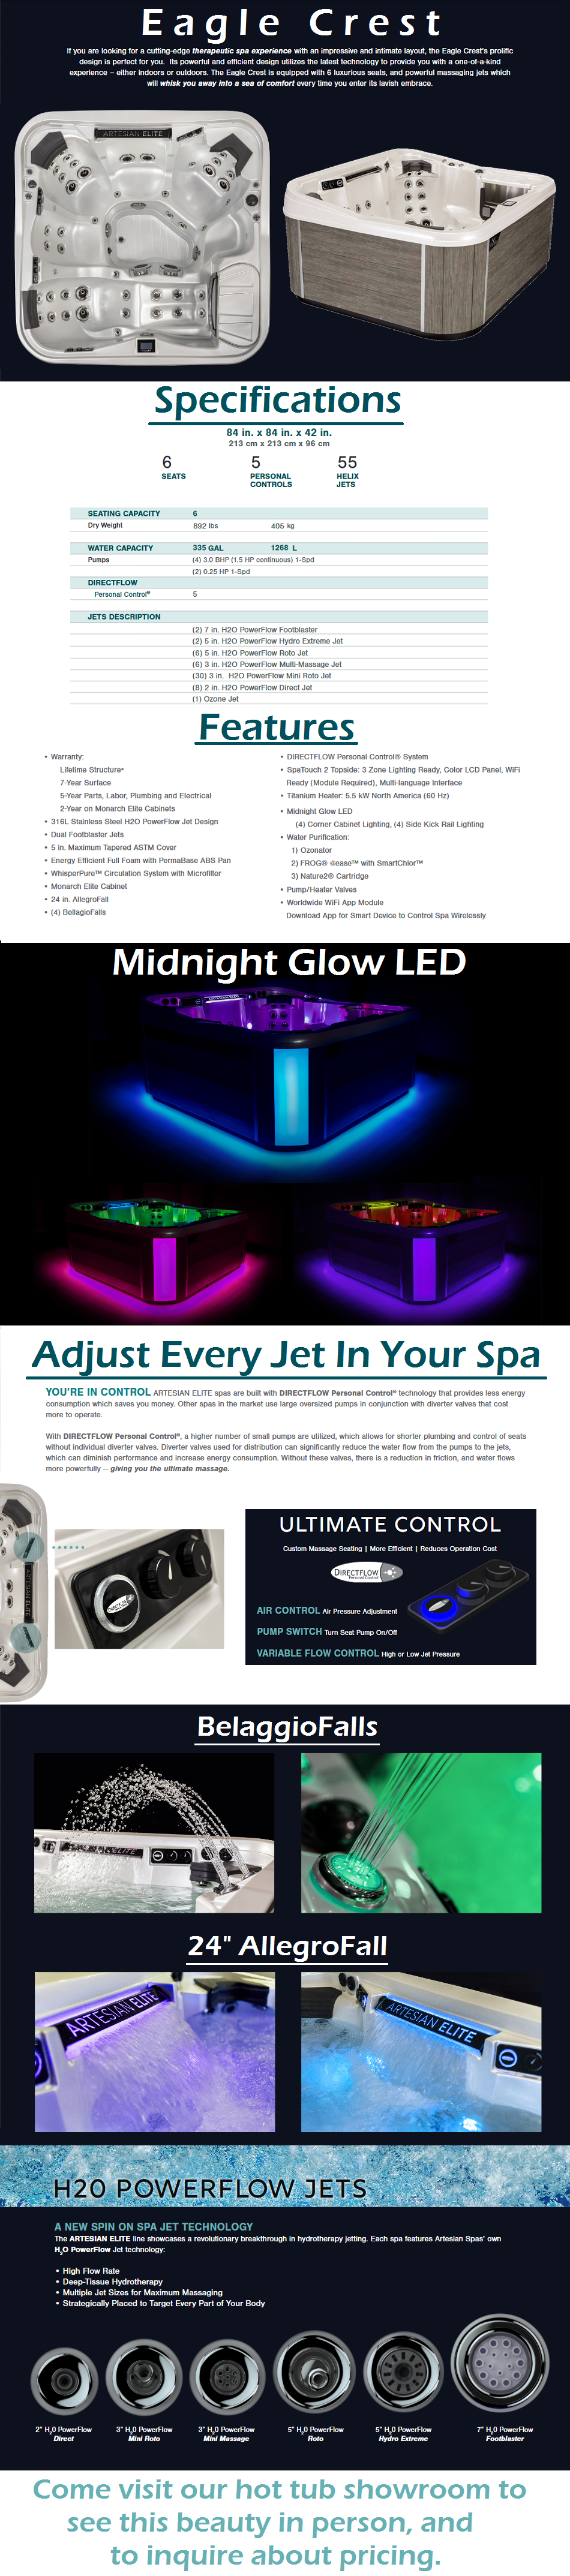 Artesian Elite Eagle Crest Hot Tub Spa Staten Island Pool and Spa New Jersey New York